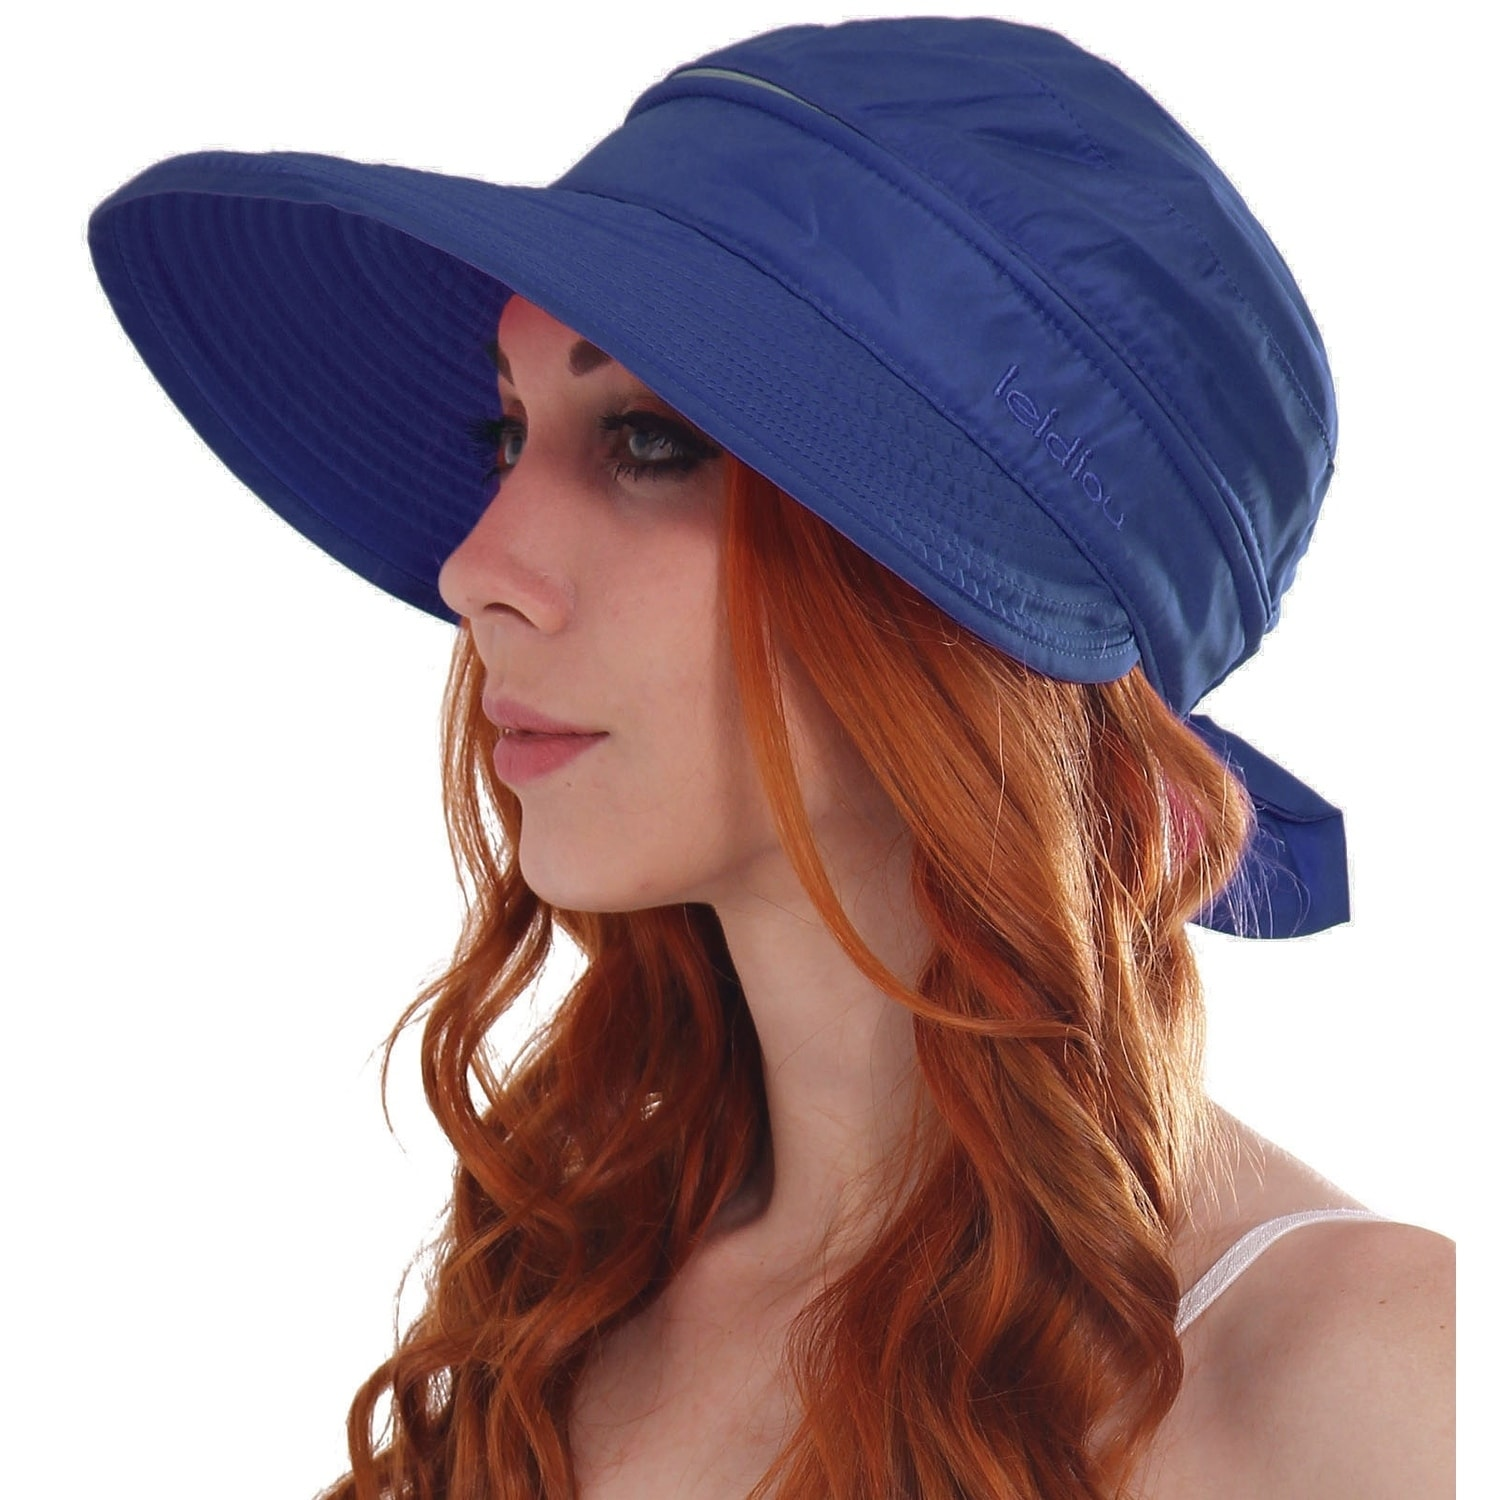 Shop Women s UPF 50+ UV Sun Protective Convertible Beach Hat Visor - On  Sale - Free Shipping On Orders Over  45 - Overstock - 19996325 9fb9397bb13c